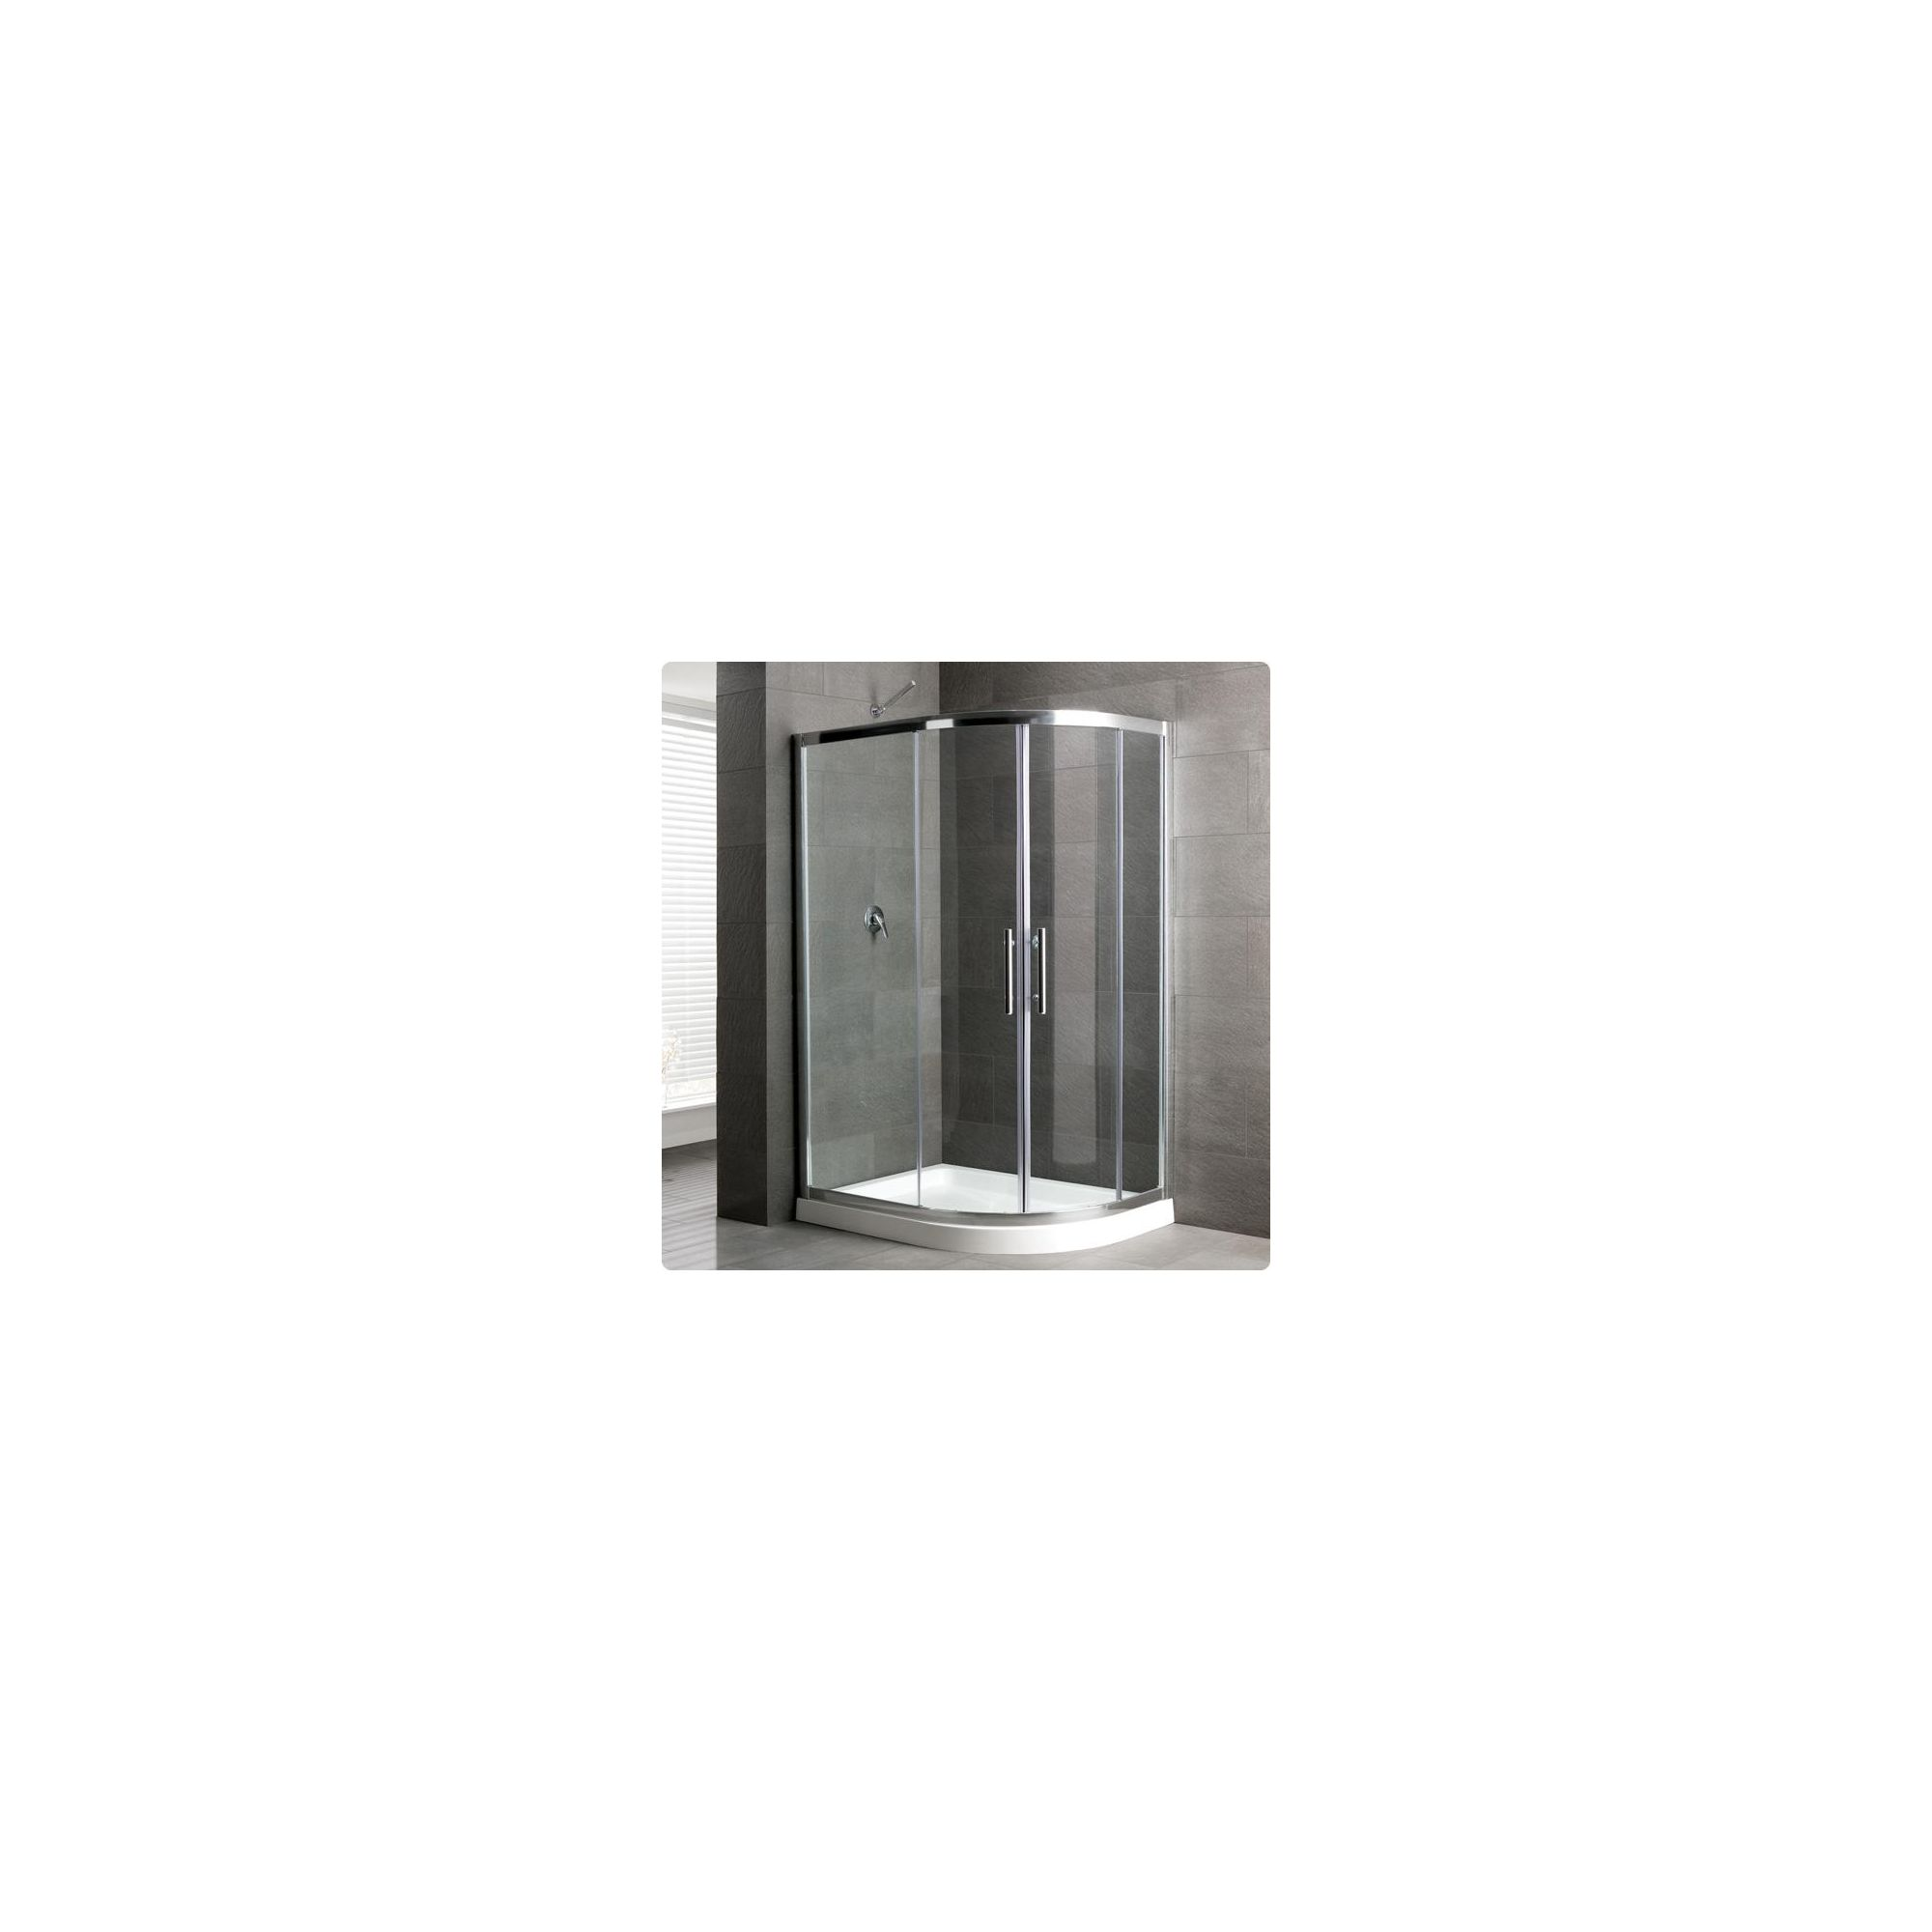 Duchy Select Silver 2 Door Offset Quadrant Shower Enclosure 1200mm x 800mm, Standard Tray, 6mm Glass at Tesco Direct